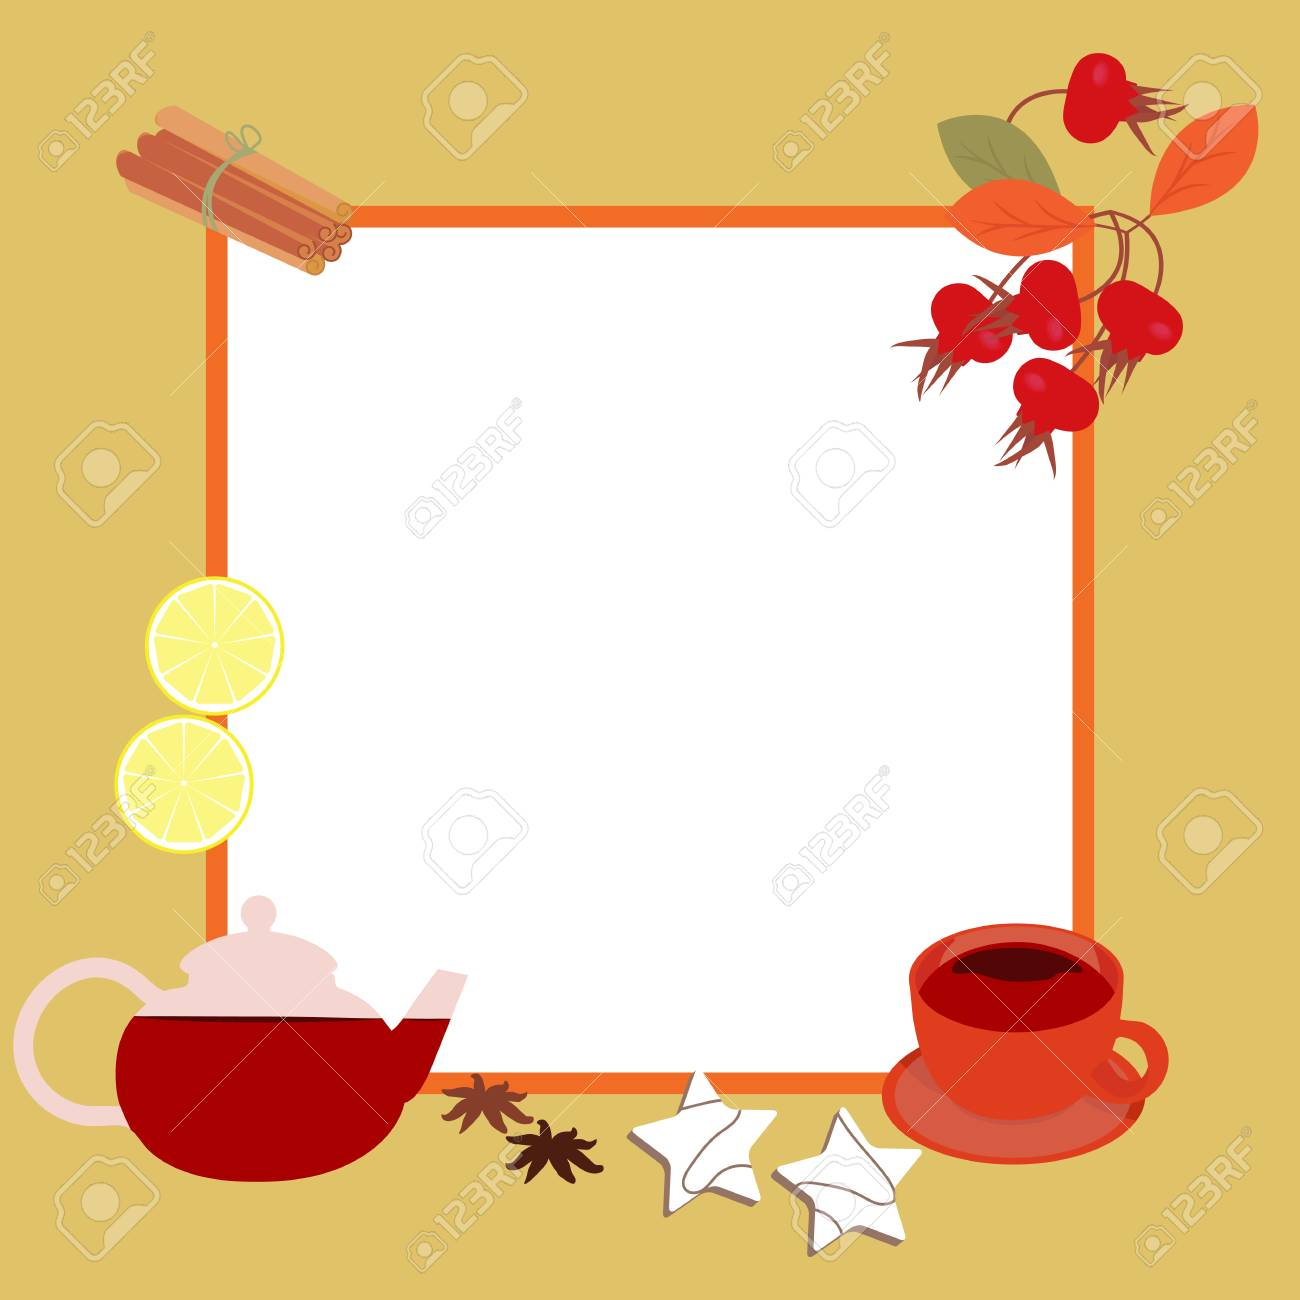 Vector Illustration Of A Frame. A Cup Of Tea, A Teapot, Cookies ...